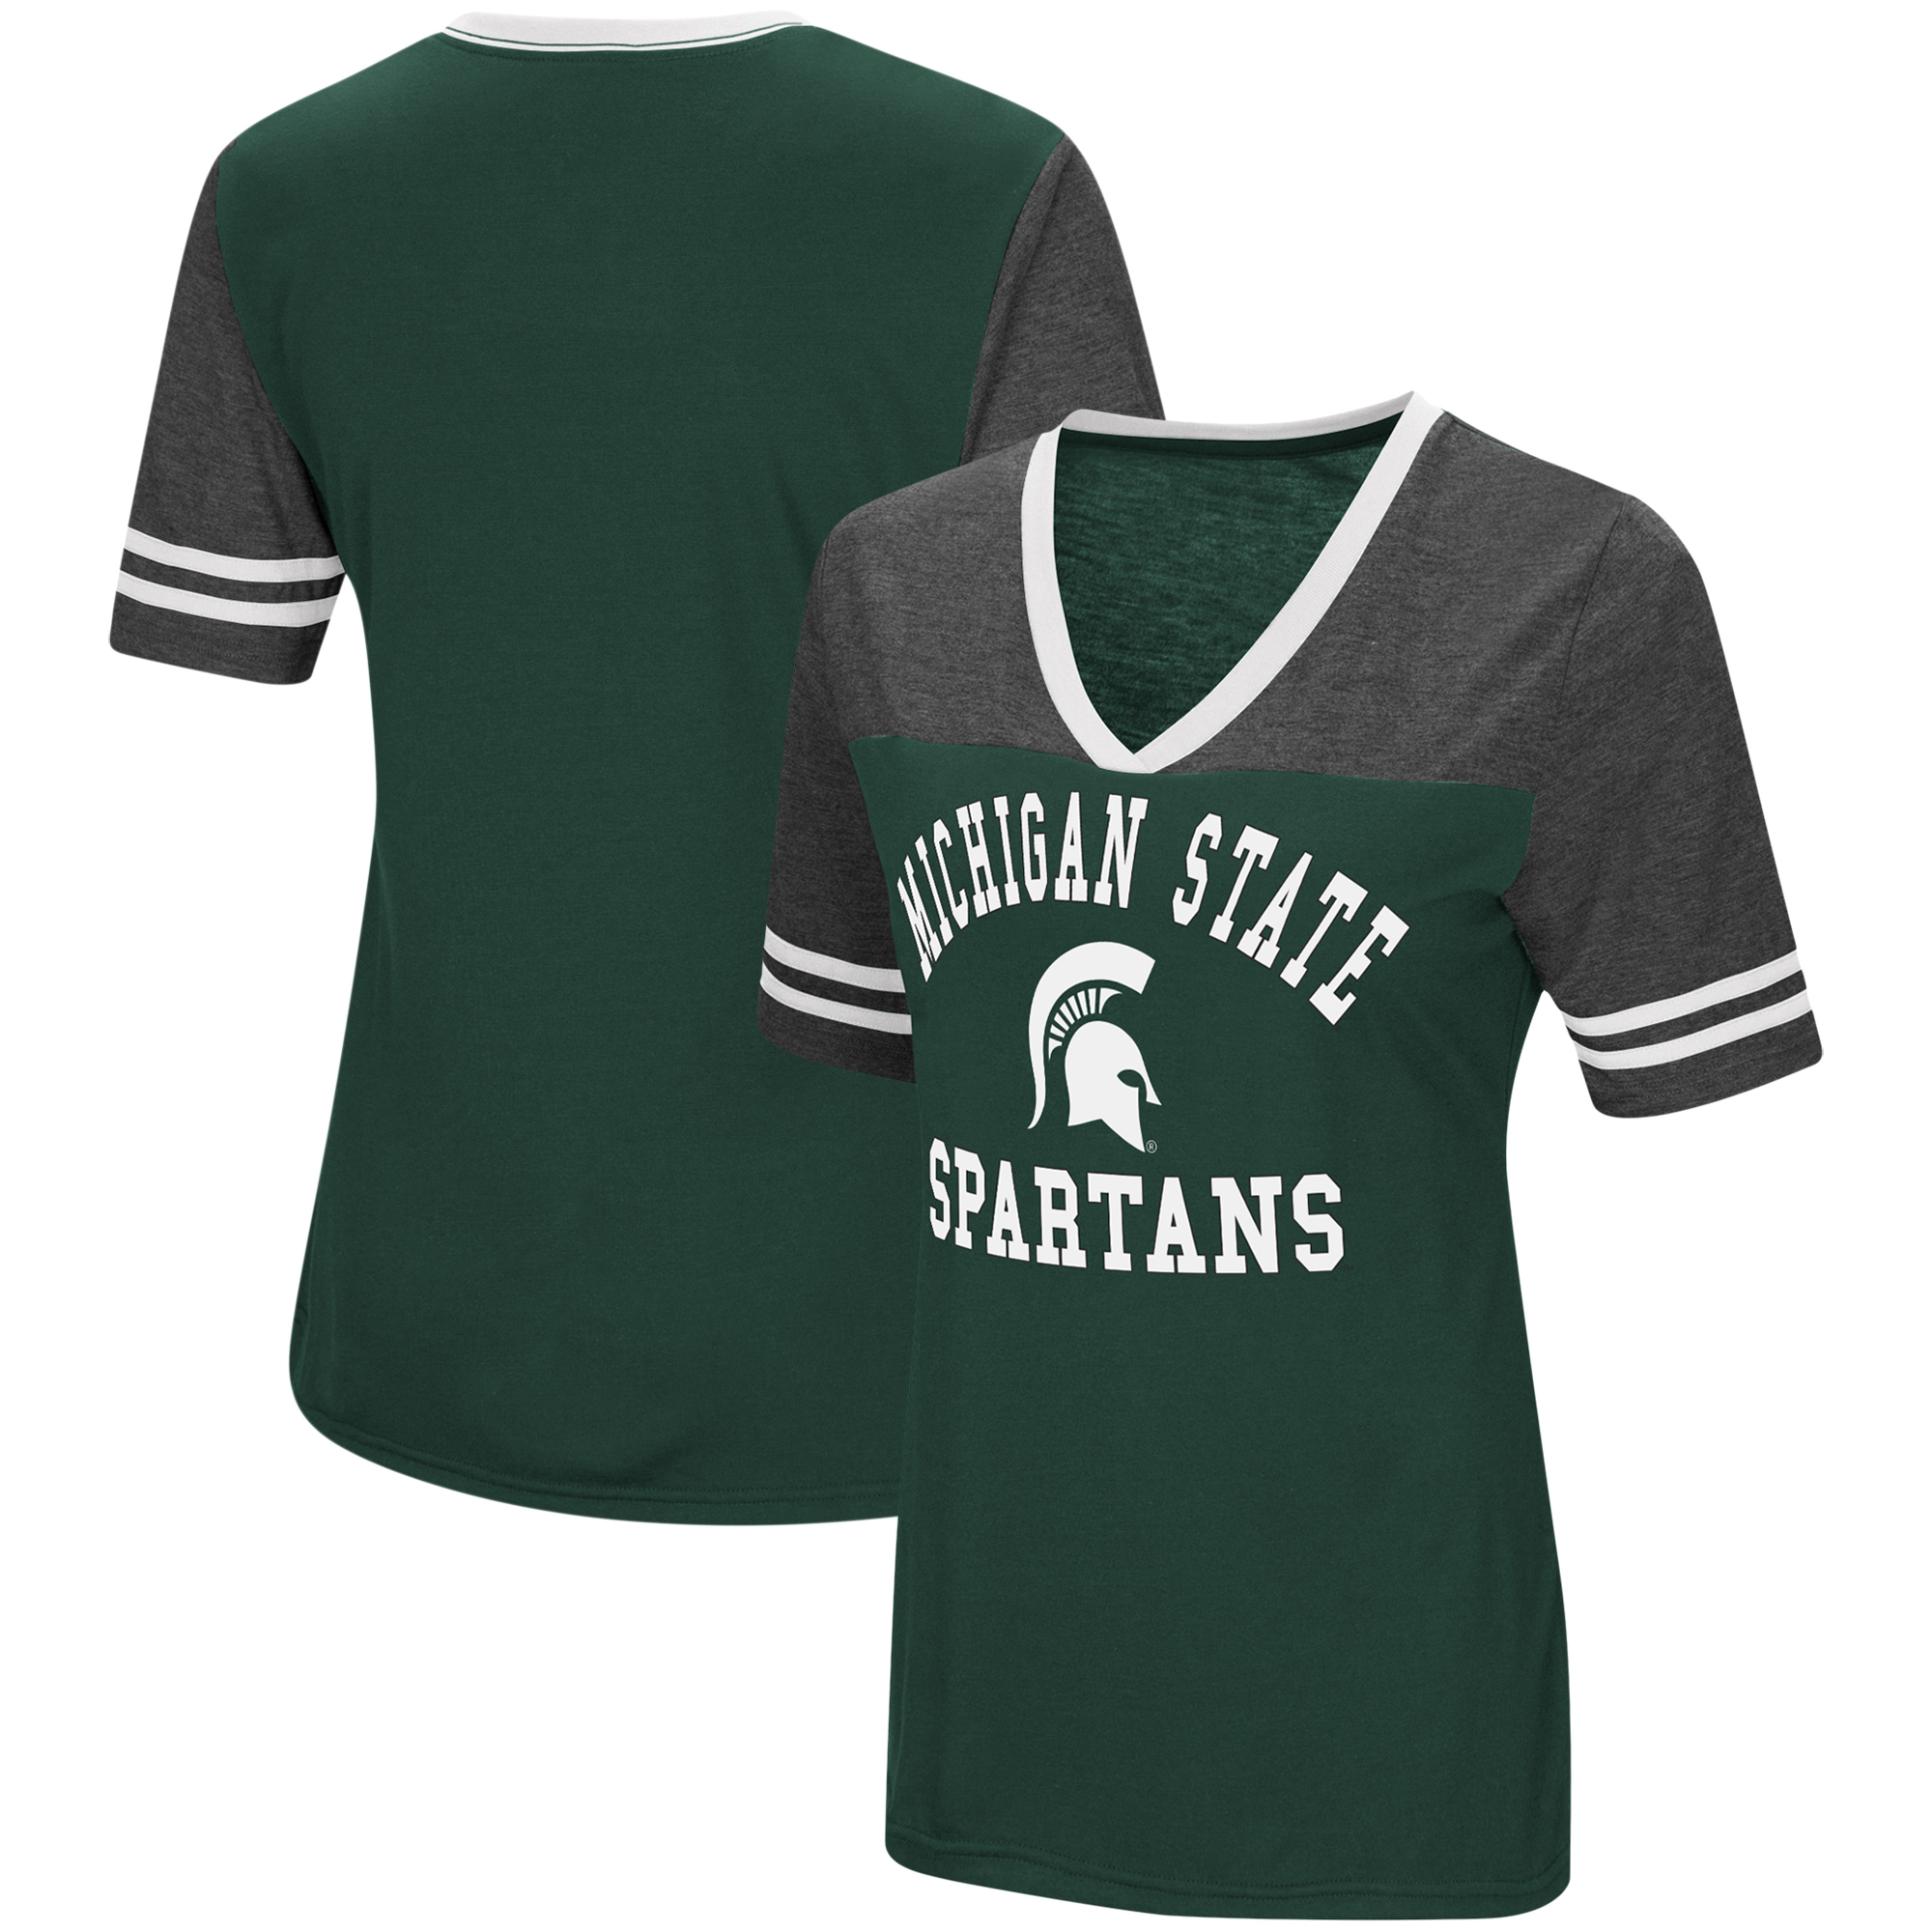 Colosseum Womens Michigan State Spartans Gym Shorts